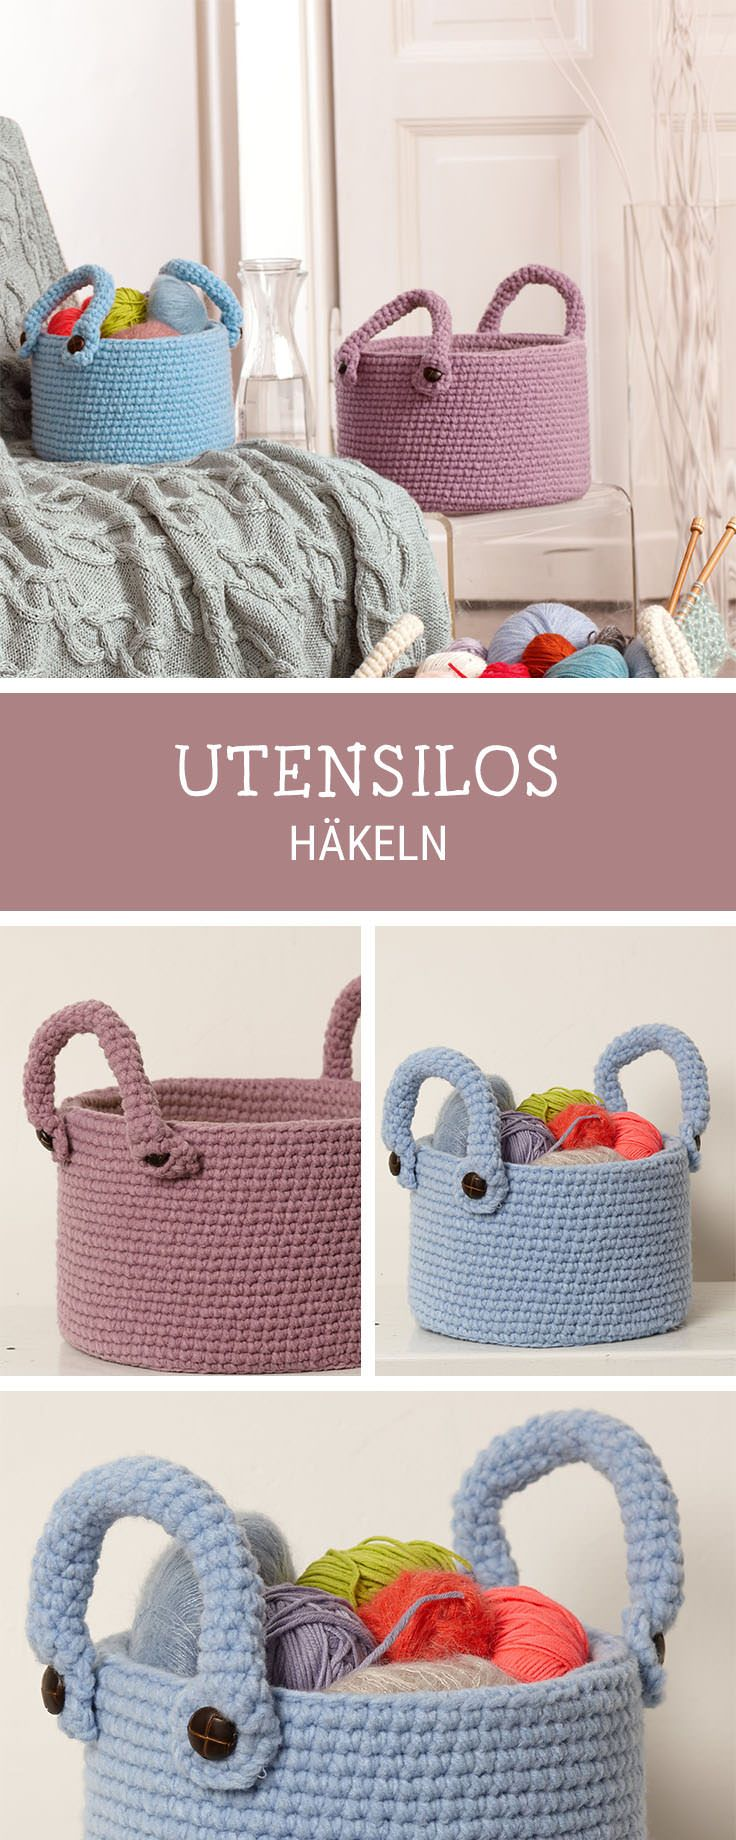 Häkelinspiration: DIY für gehäkelte Utensilos in verschiedenen Größen / diy inspiration: crochet tutorial and pattern for crocheted utensilos via DaWanda.com